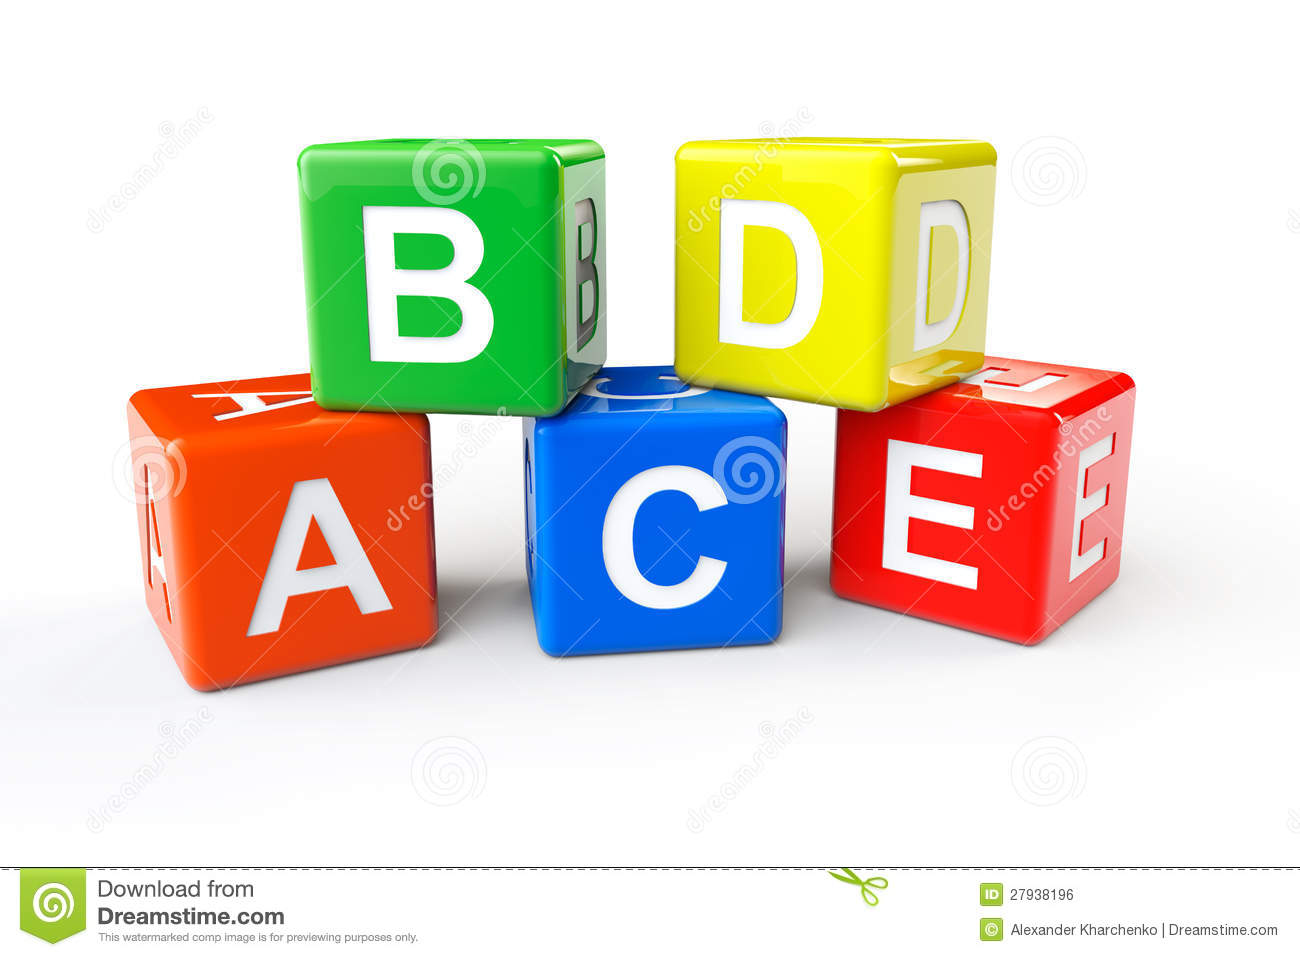 Royalty Free Stock Image Abcd Block Cubes Image27938196 on four square symbol